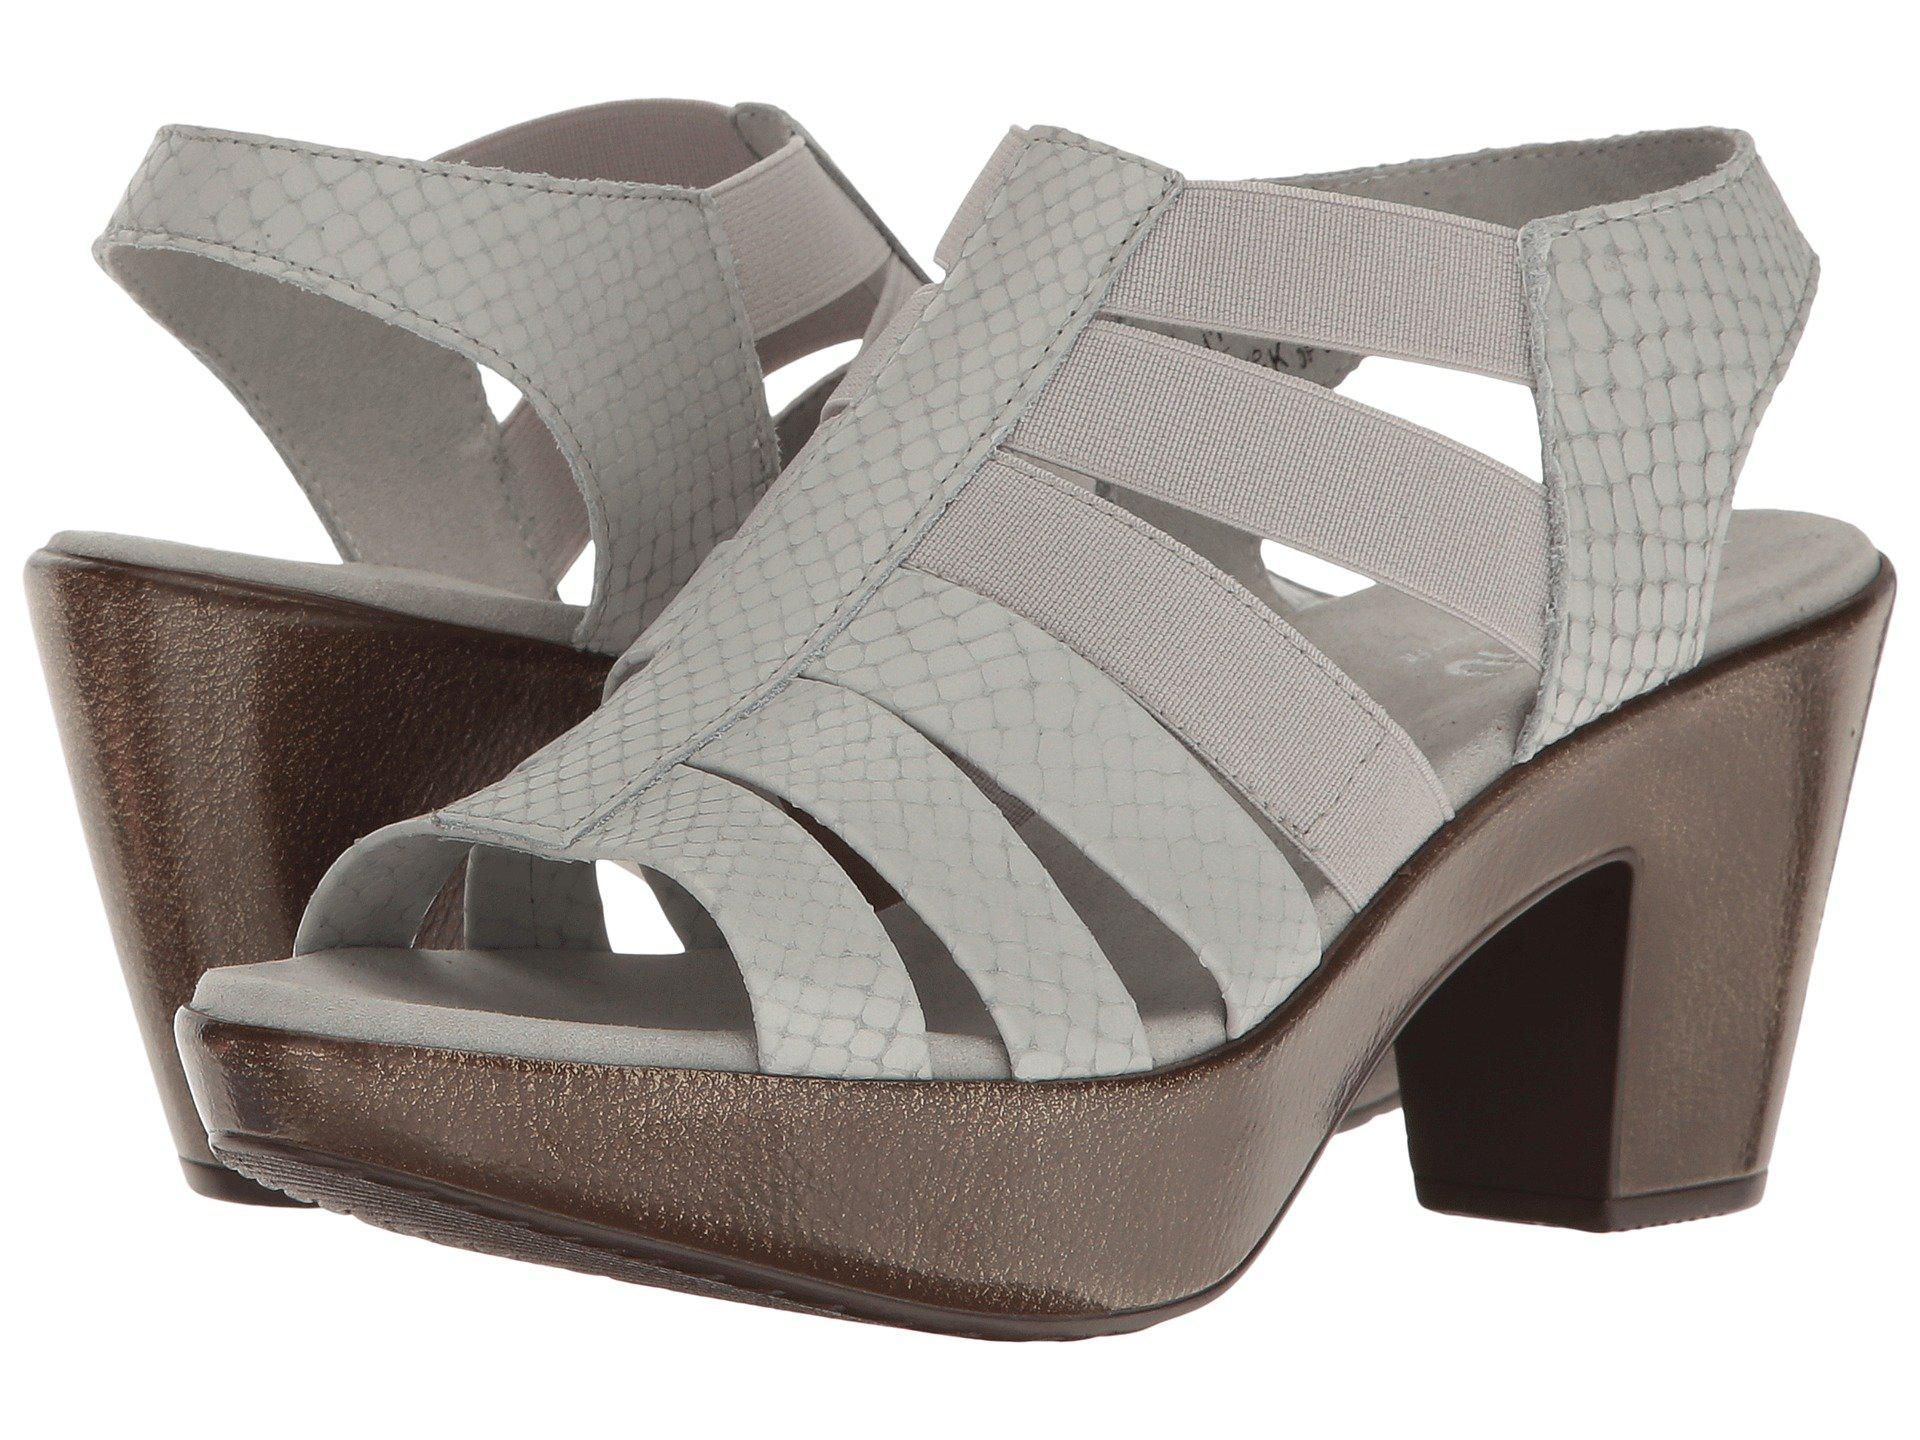 bbdb447b3c3 Lyst - Munro Cookie in Gray - Save 39%